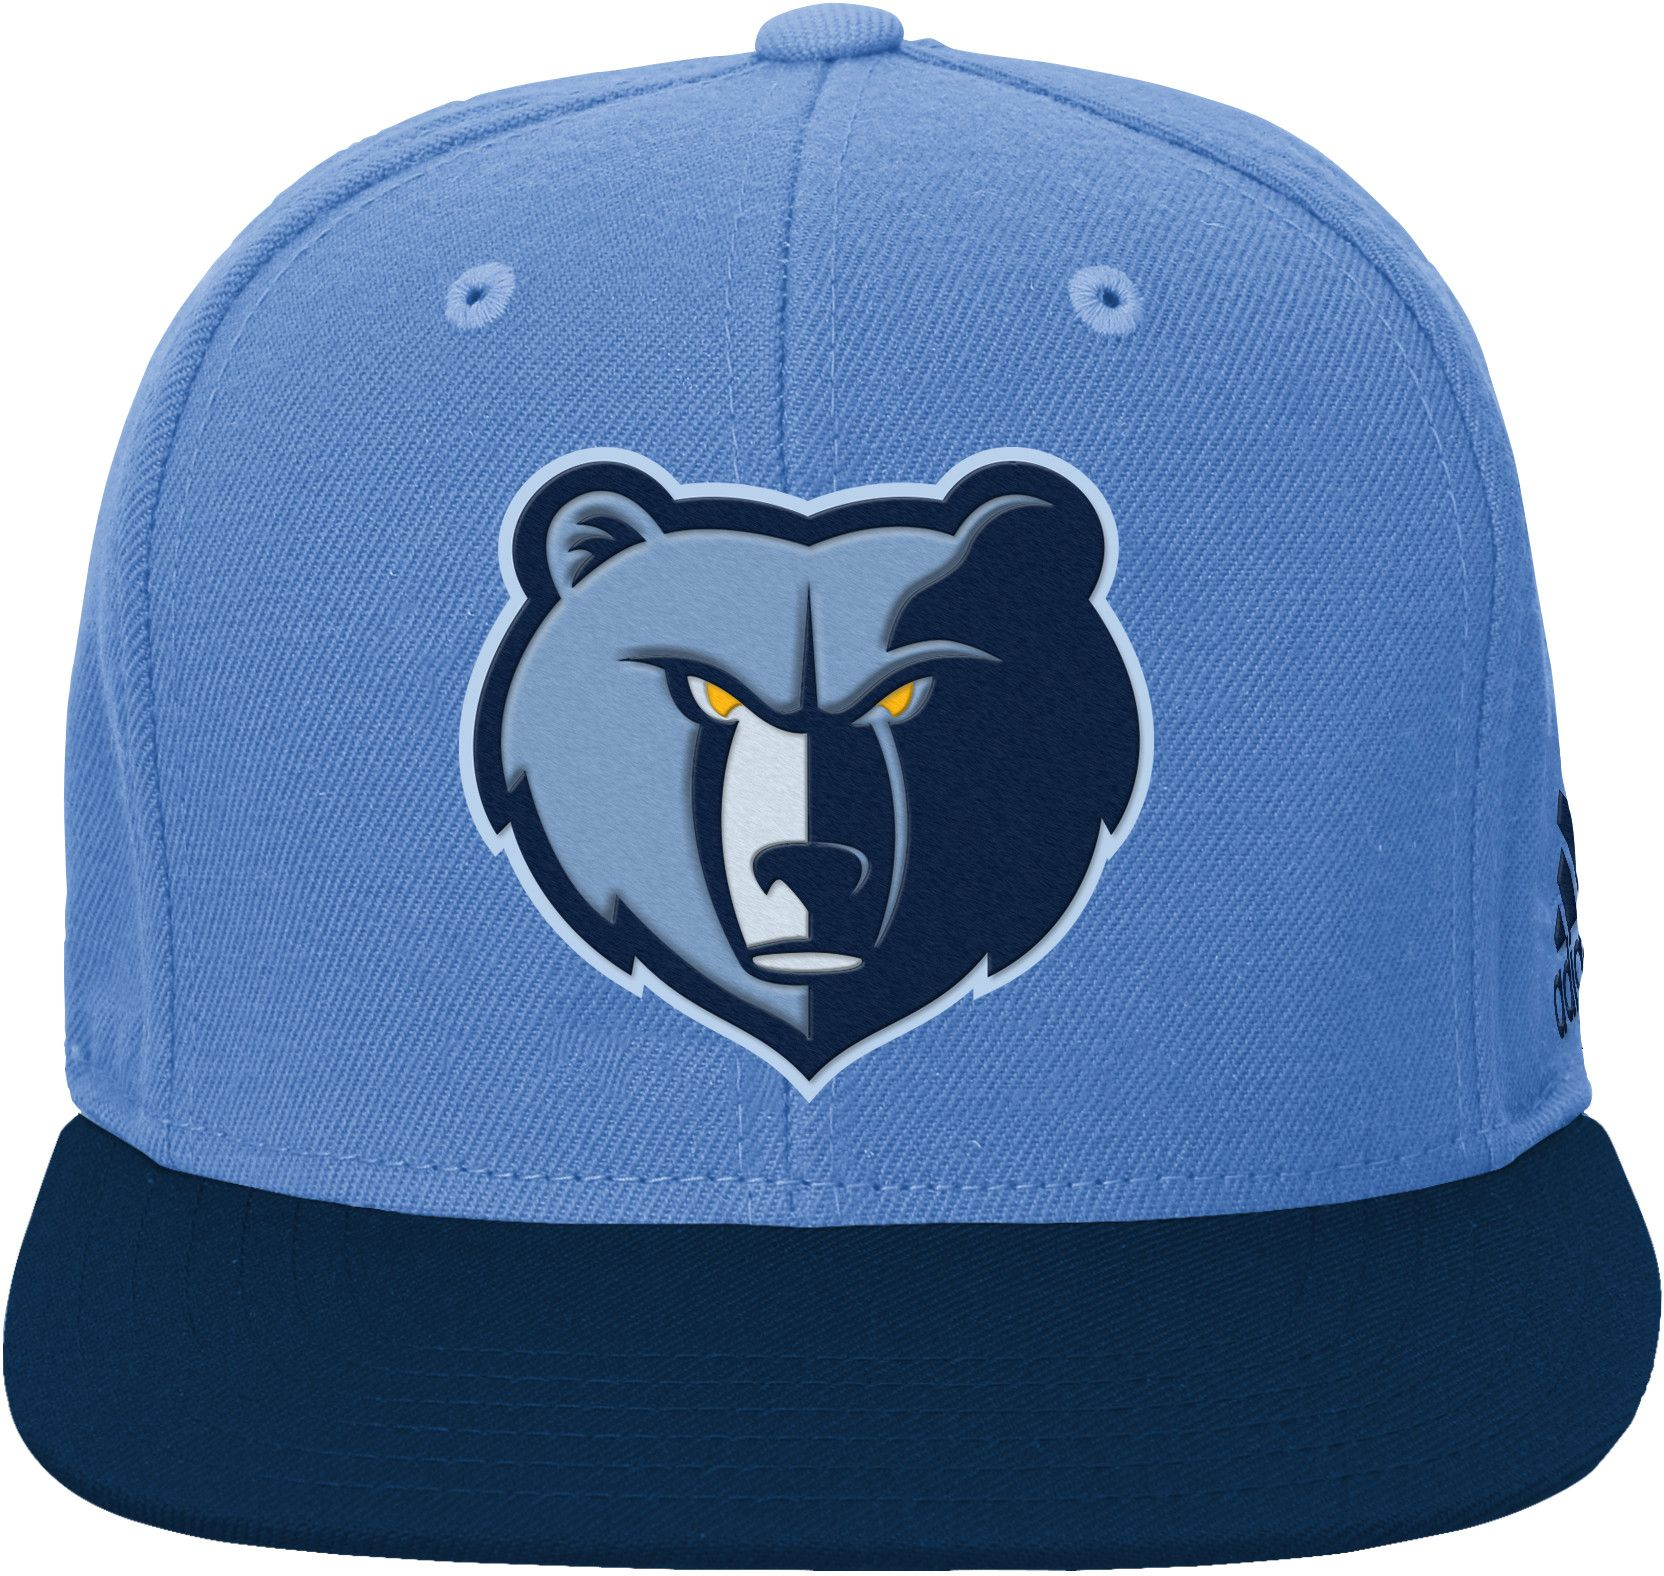 adidas Boys Memphis Grizzlies Adjustable Snapback Hat DICKS Sporting Goods